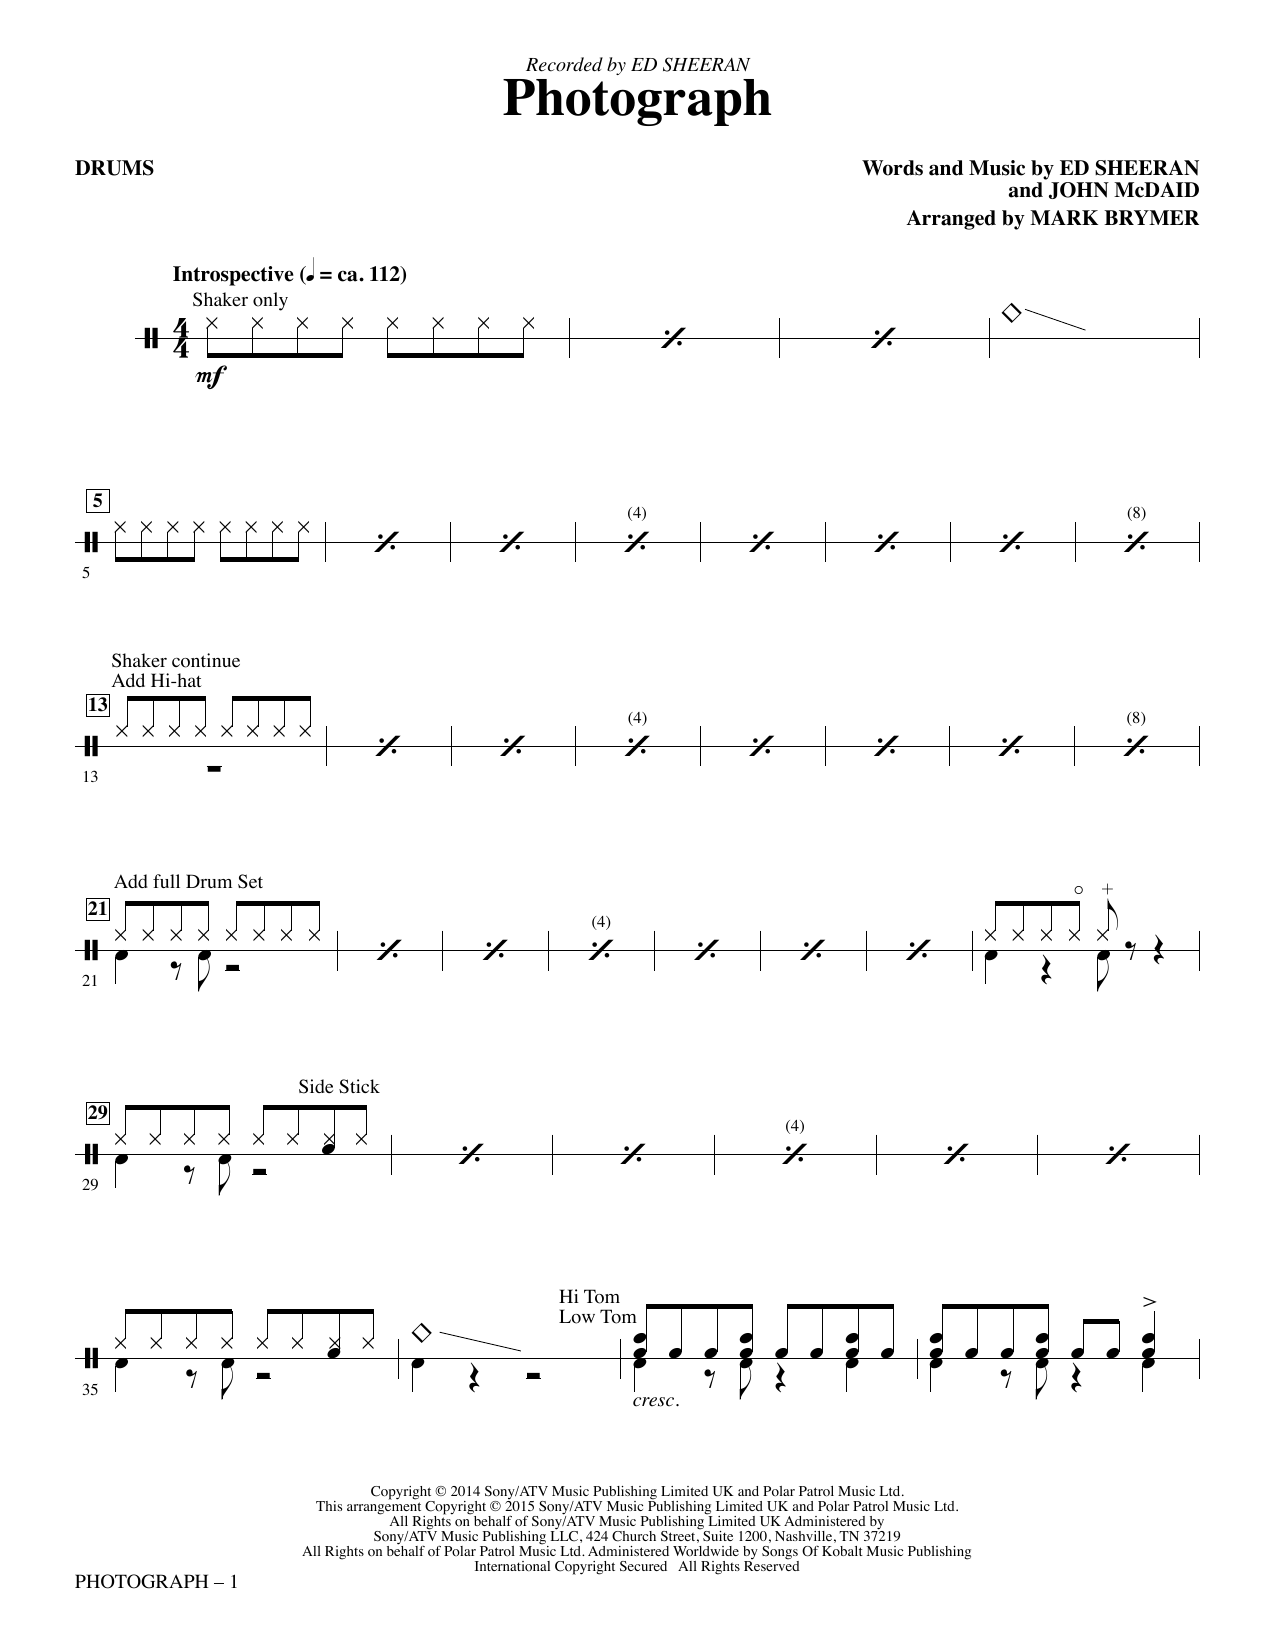 Photograph - Drums Sheet Music